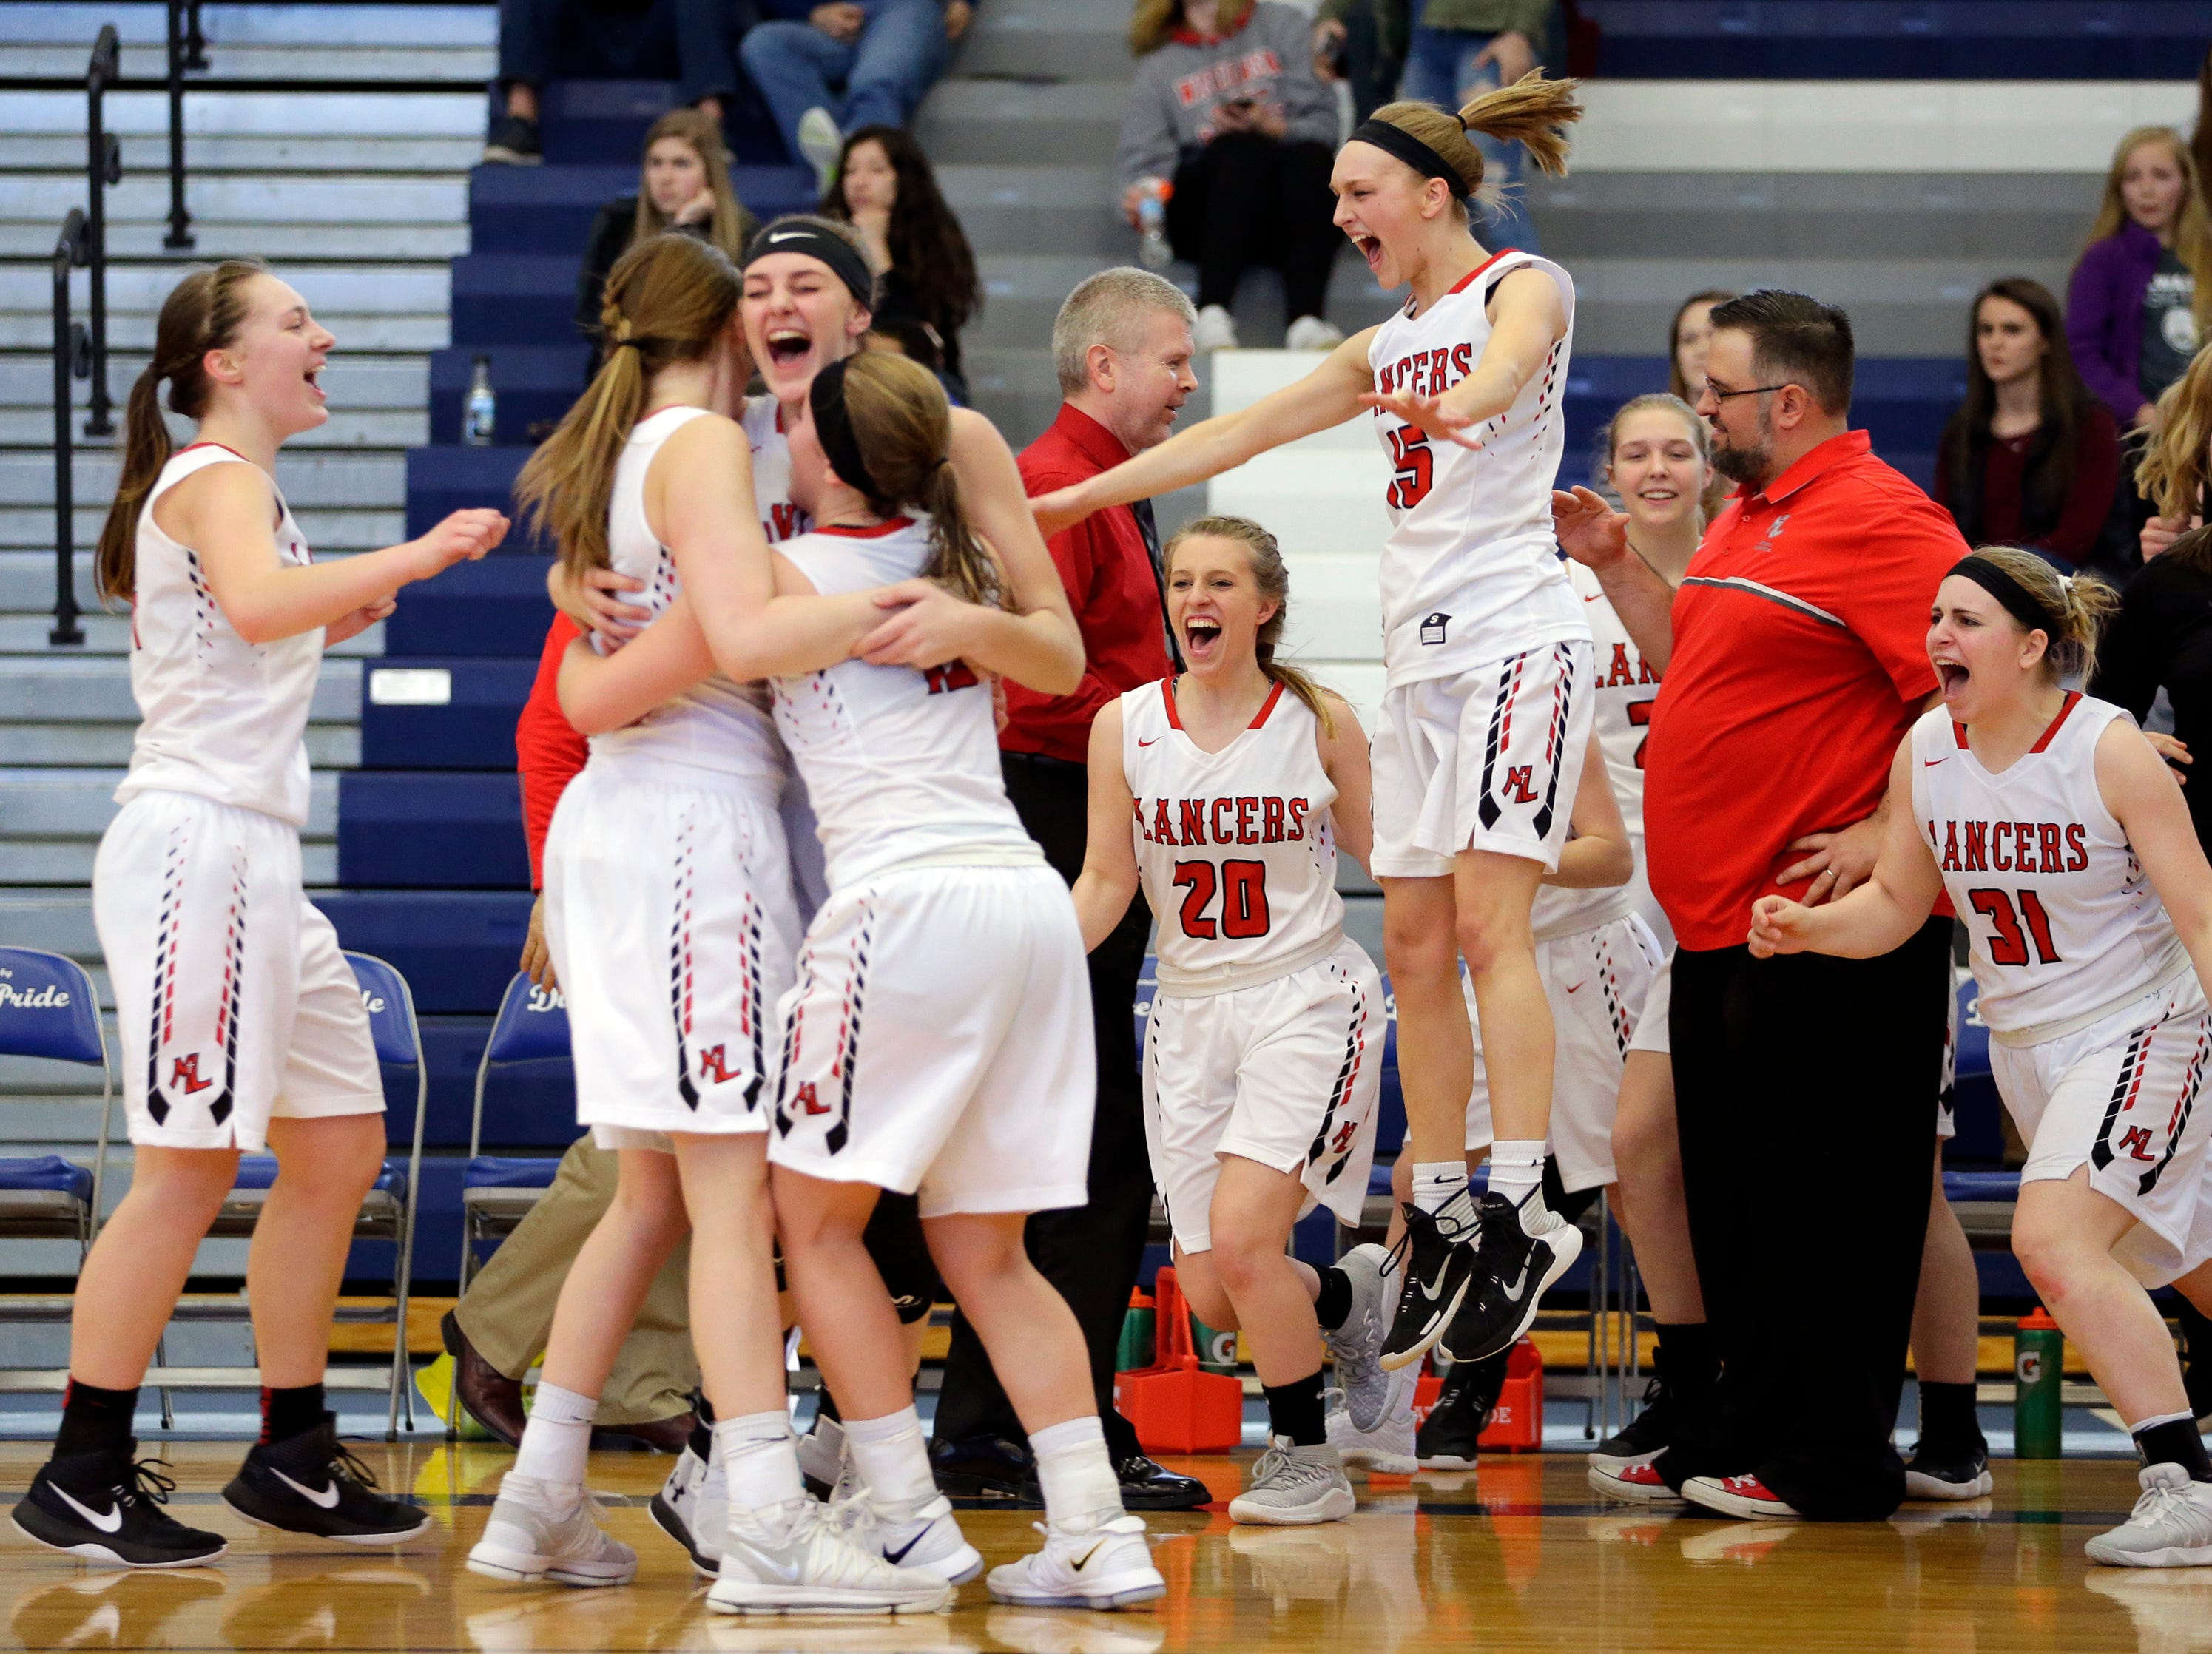 Manitowoc Lutheran's girls basketball team celebrates winning their D4 sectional championship against Milwaukee Academy of Science at Whitefish Bay High School Saturday, Mar. 3, 2018, in Whitefish Bay, Wis. Josh Clark/USA TODAY NETWORK-Wisconsin